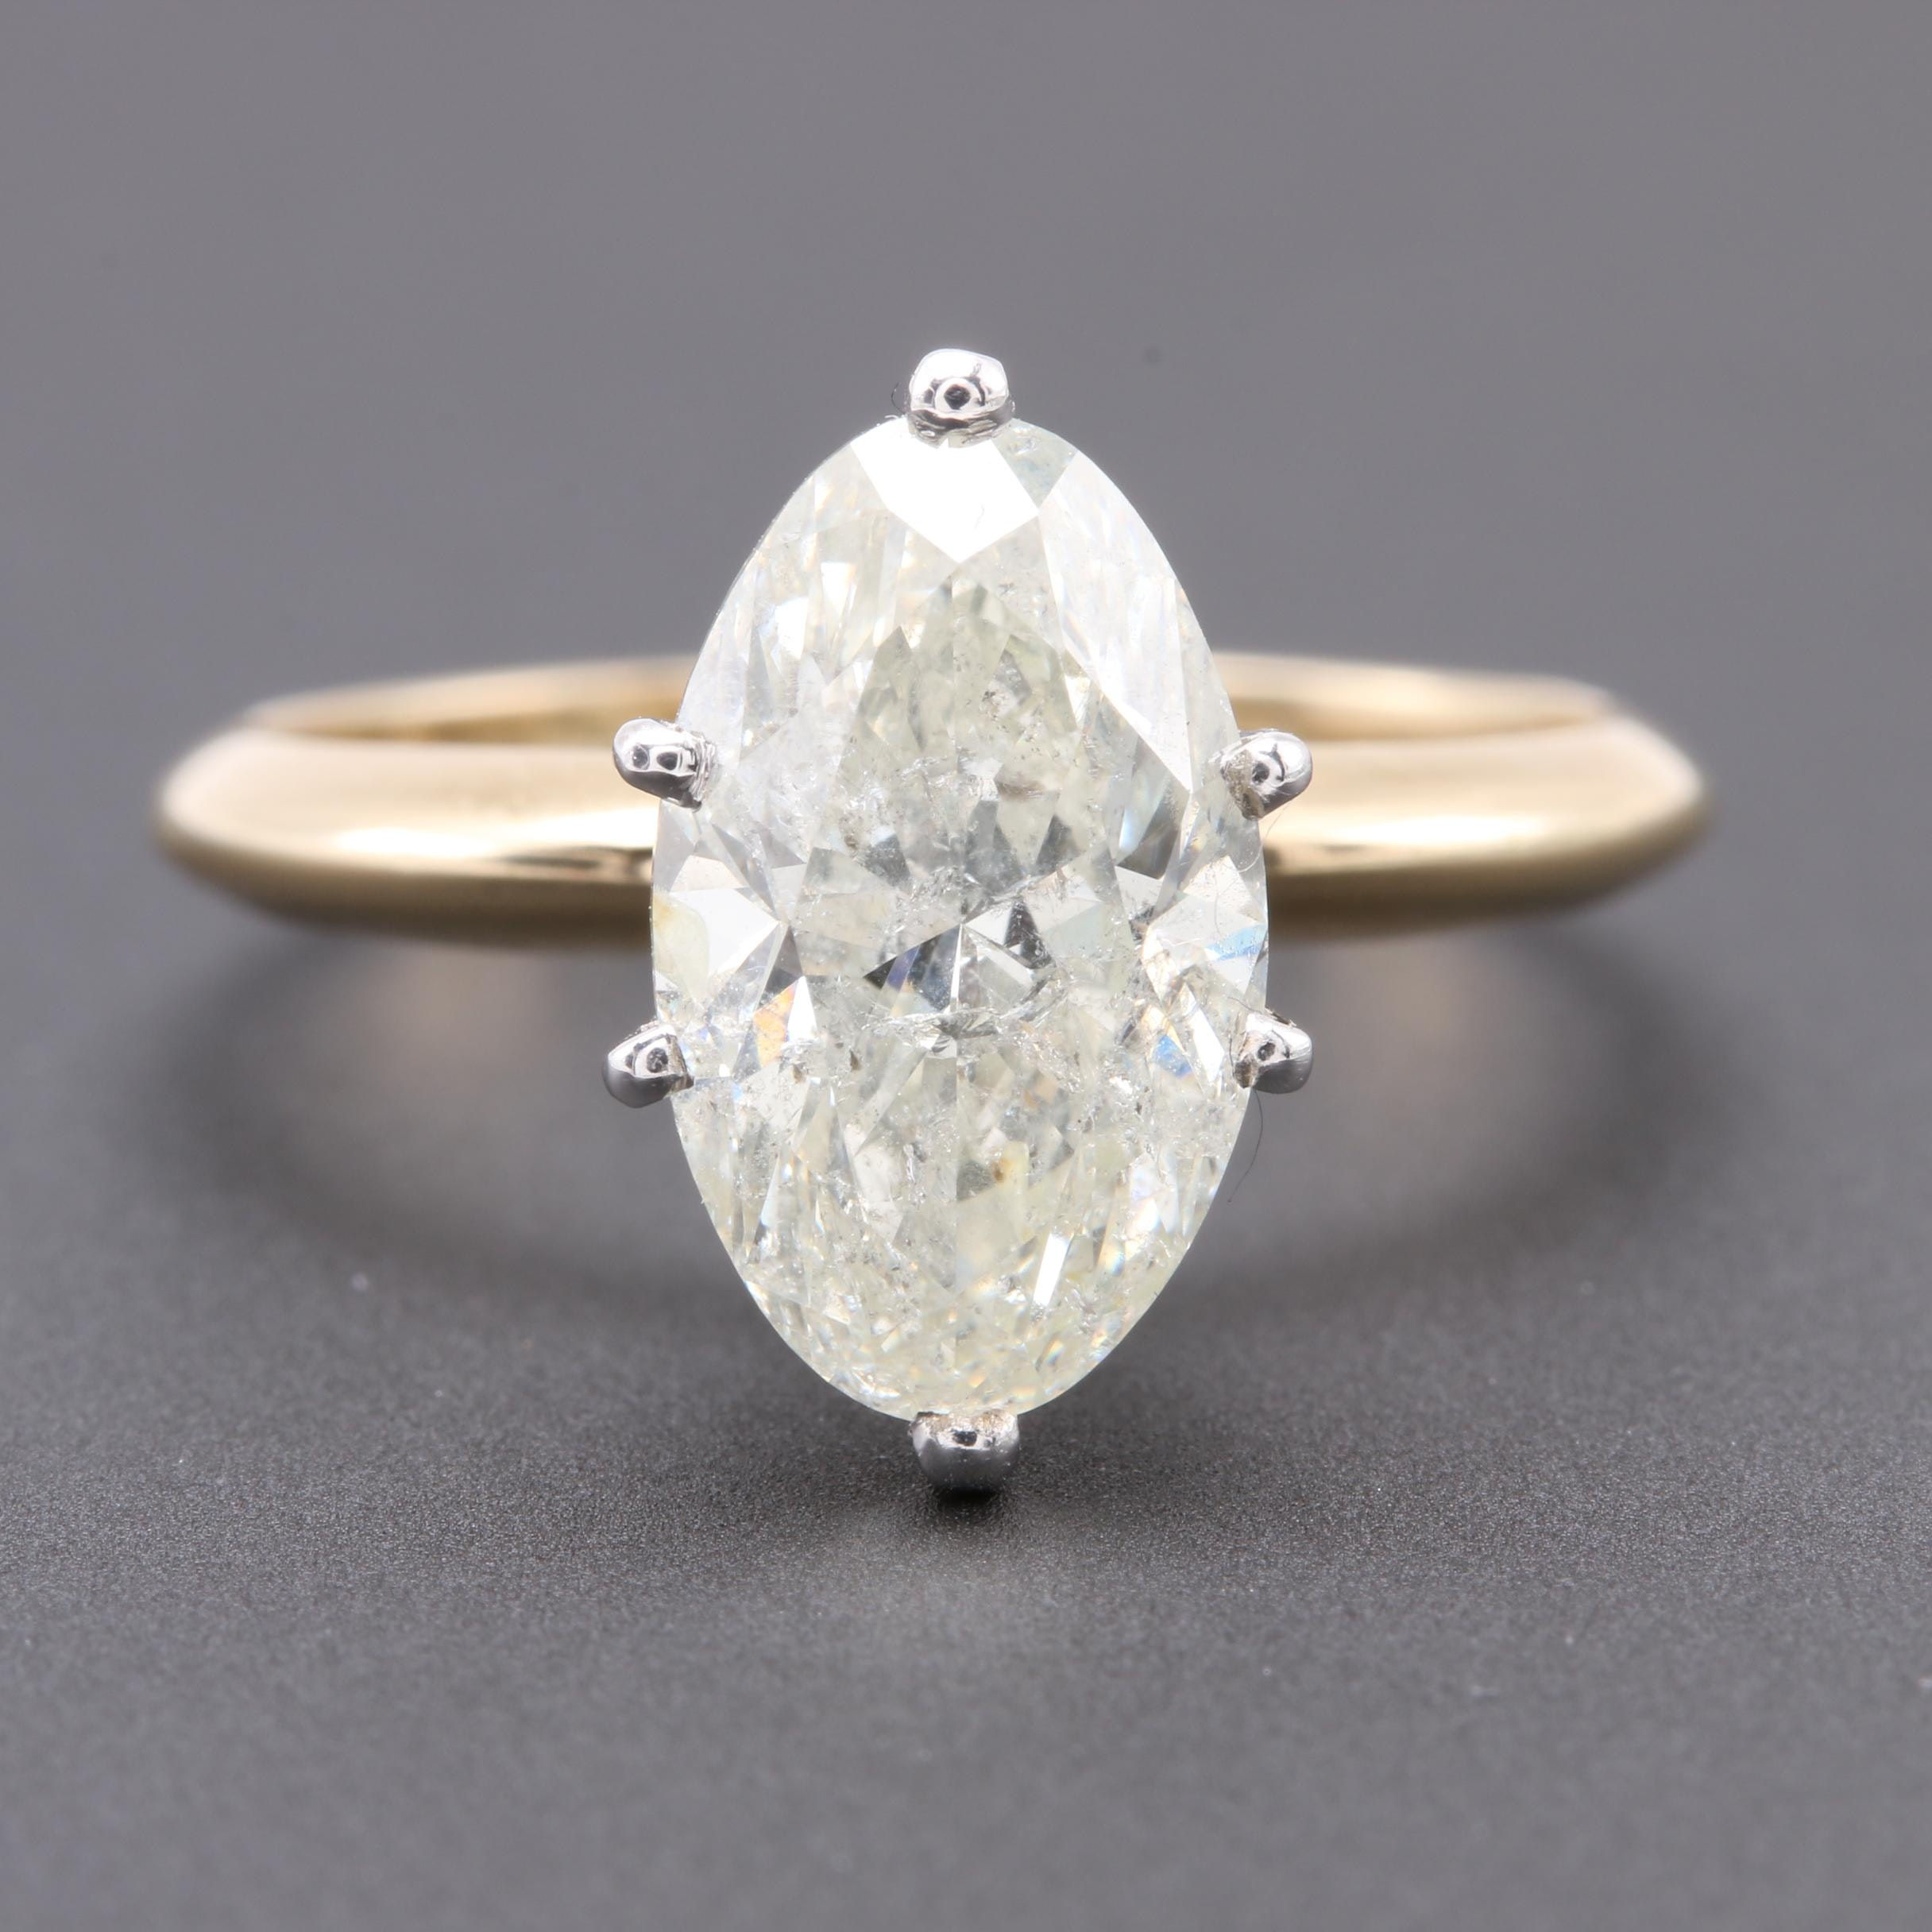 14K Yellow Gold 3.03 CT Diamond Solitaire Ring